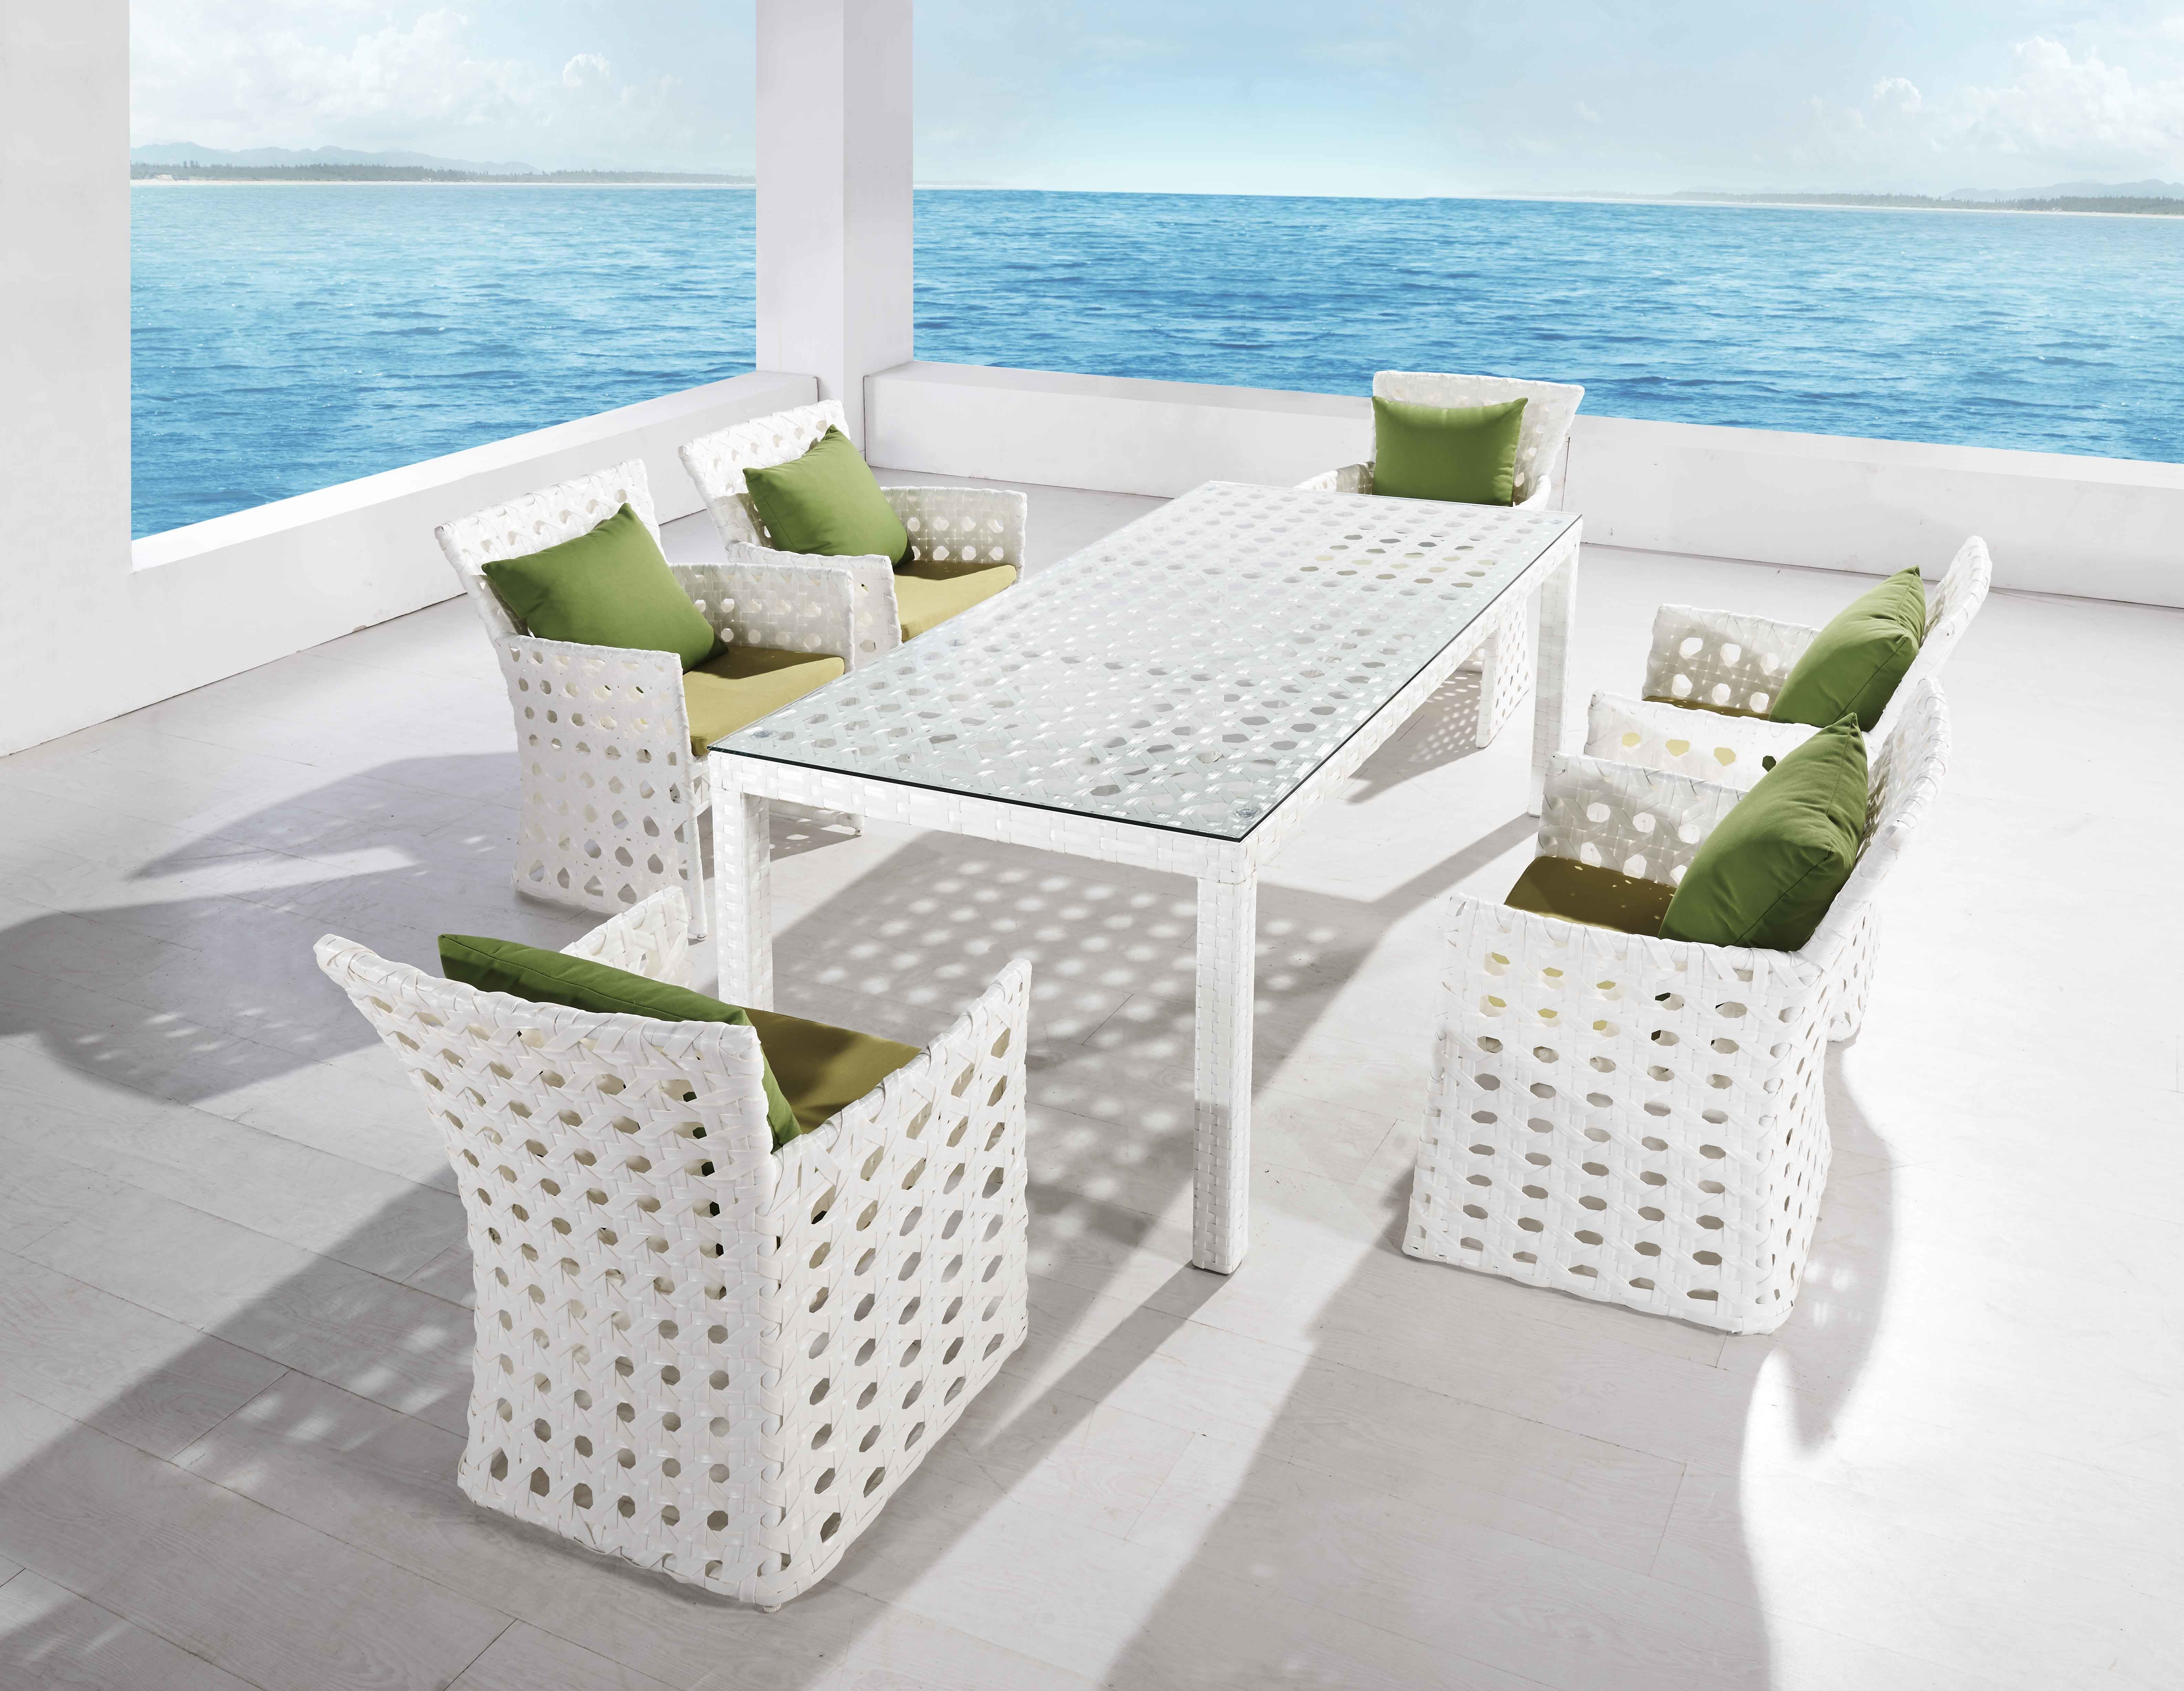 Orchard 6-seat Patio Dining Set